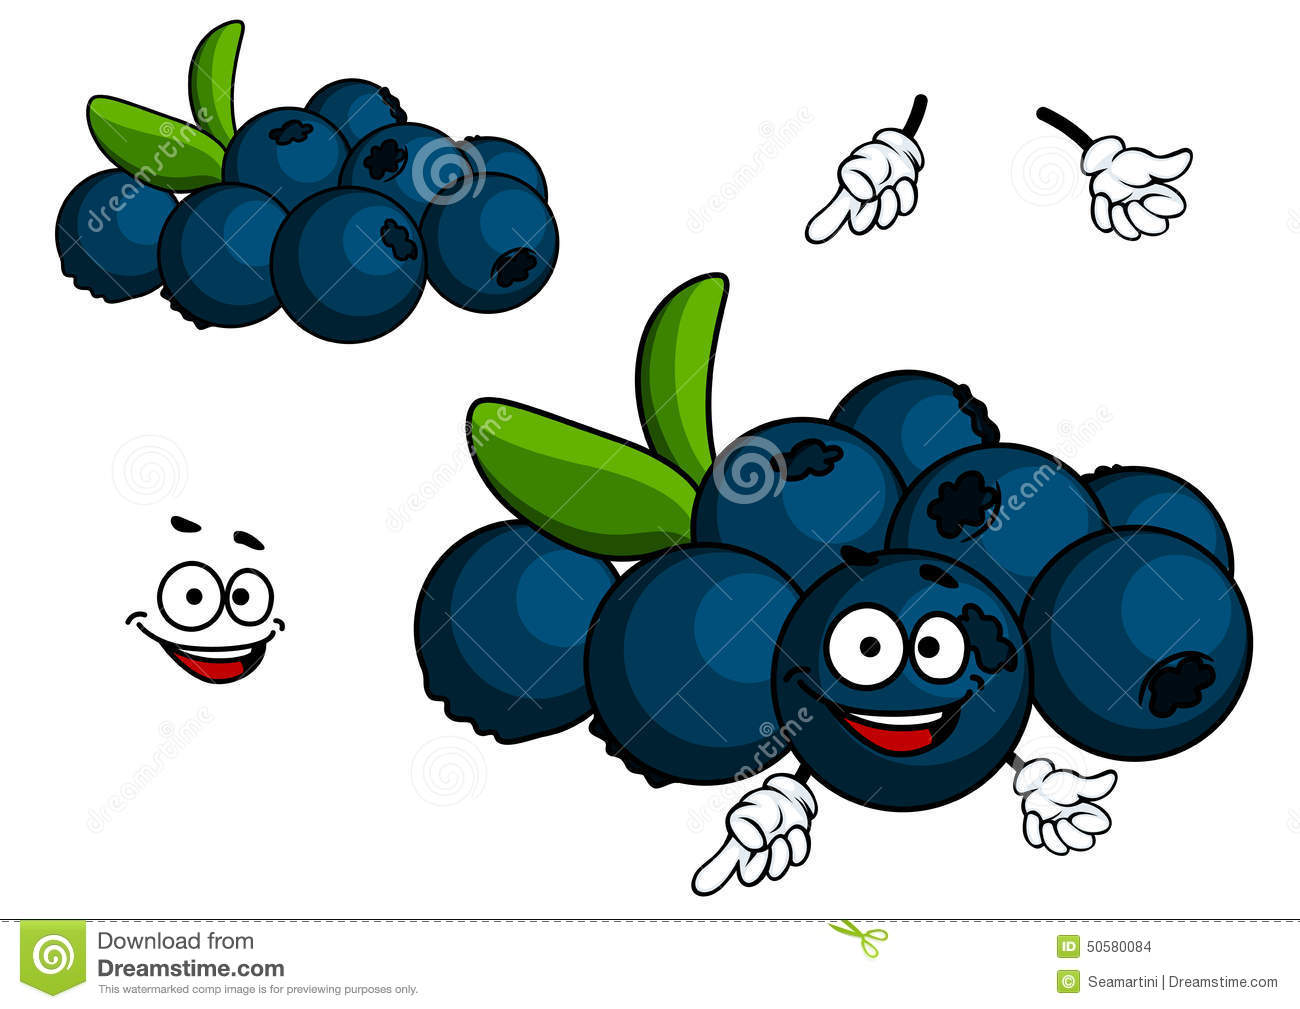 Blueberry business plan